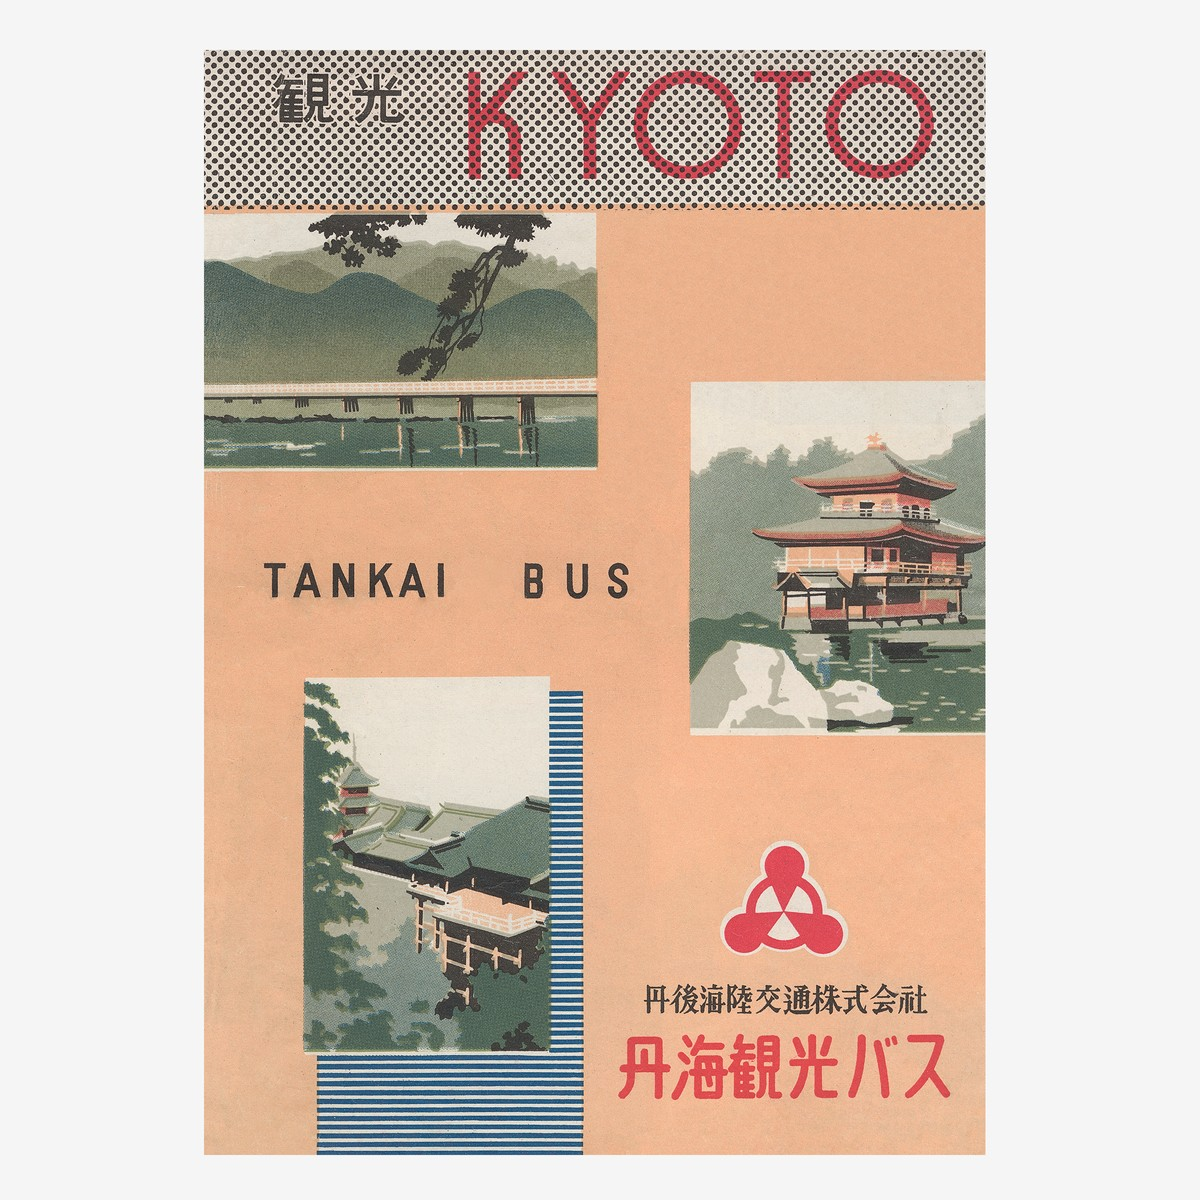 Photo of Kyoto by Bus Vintage Advertising Poster